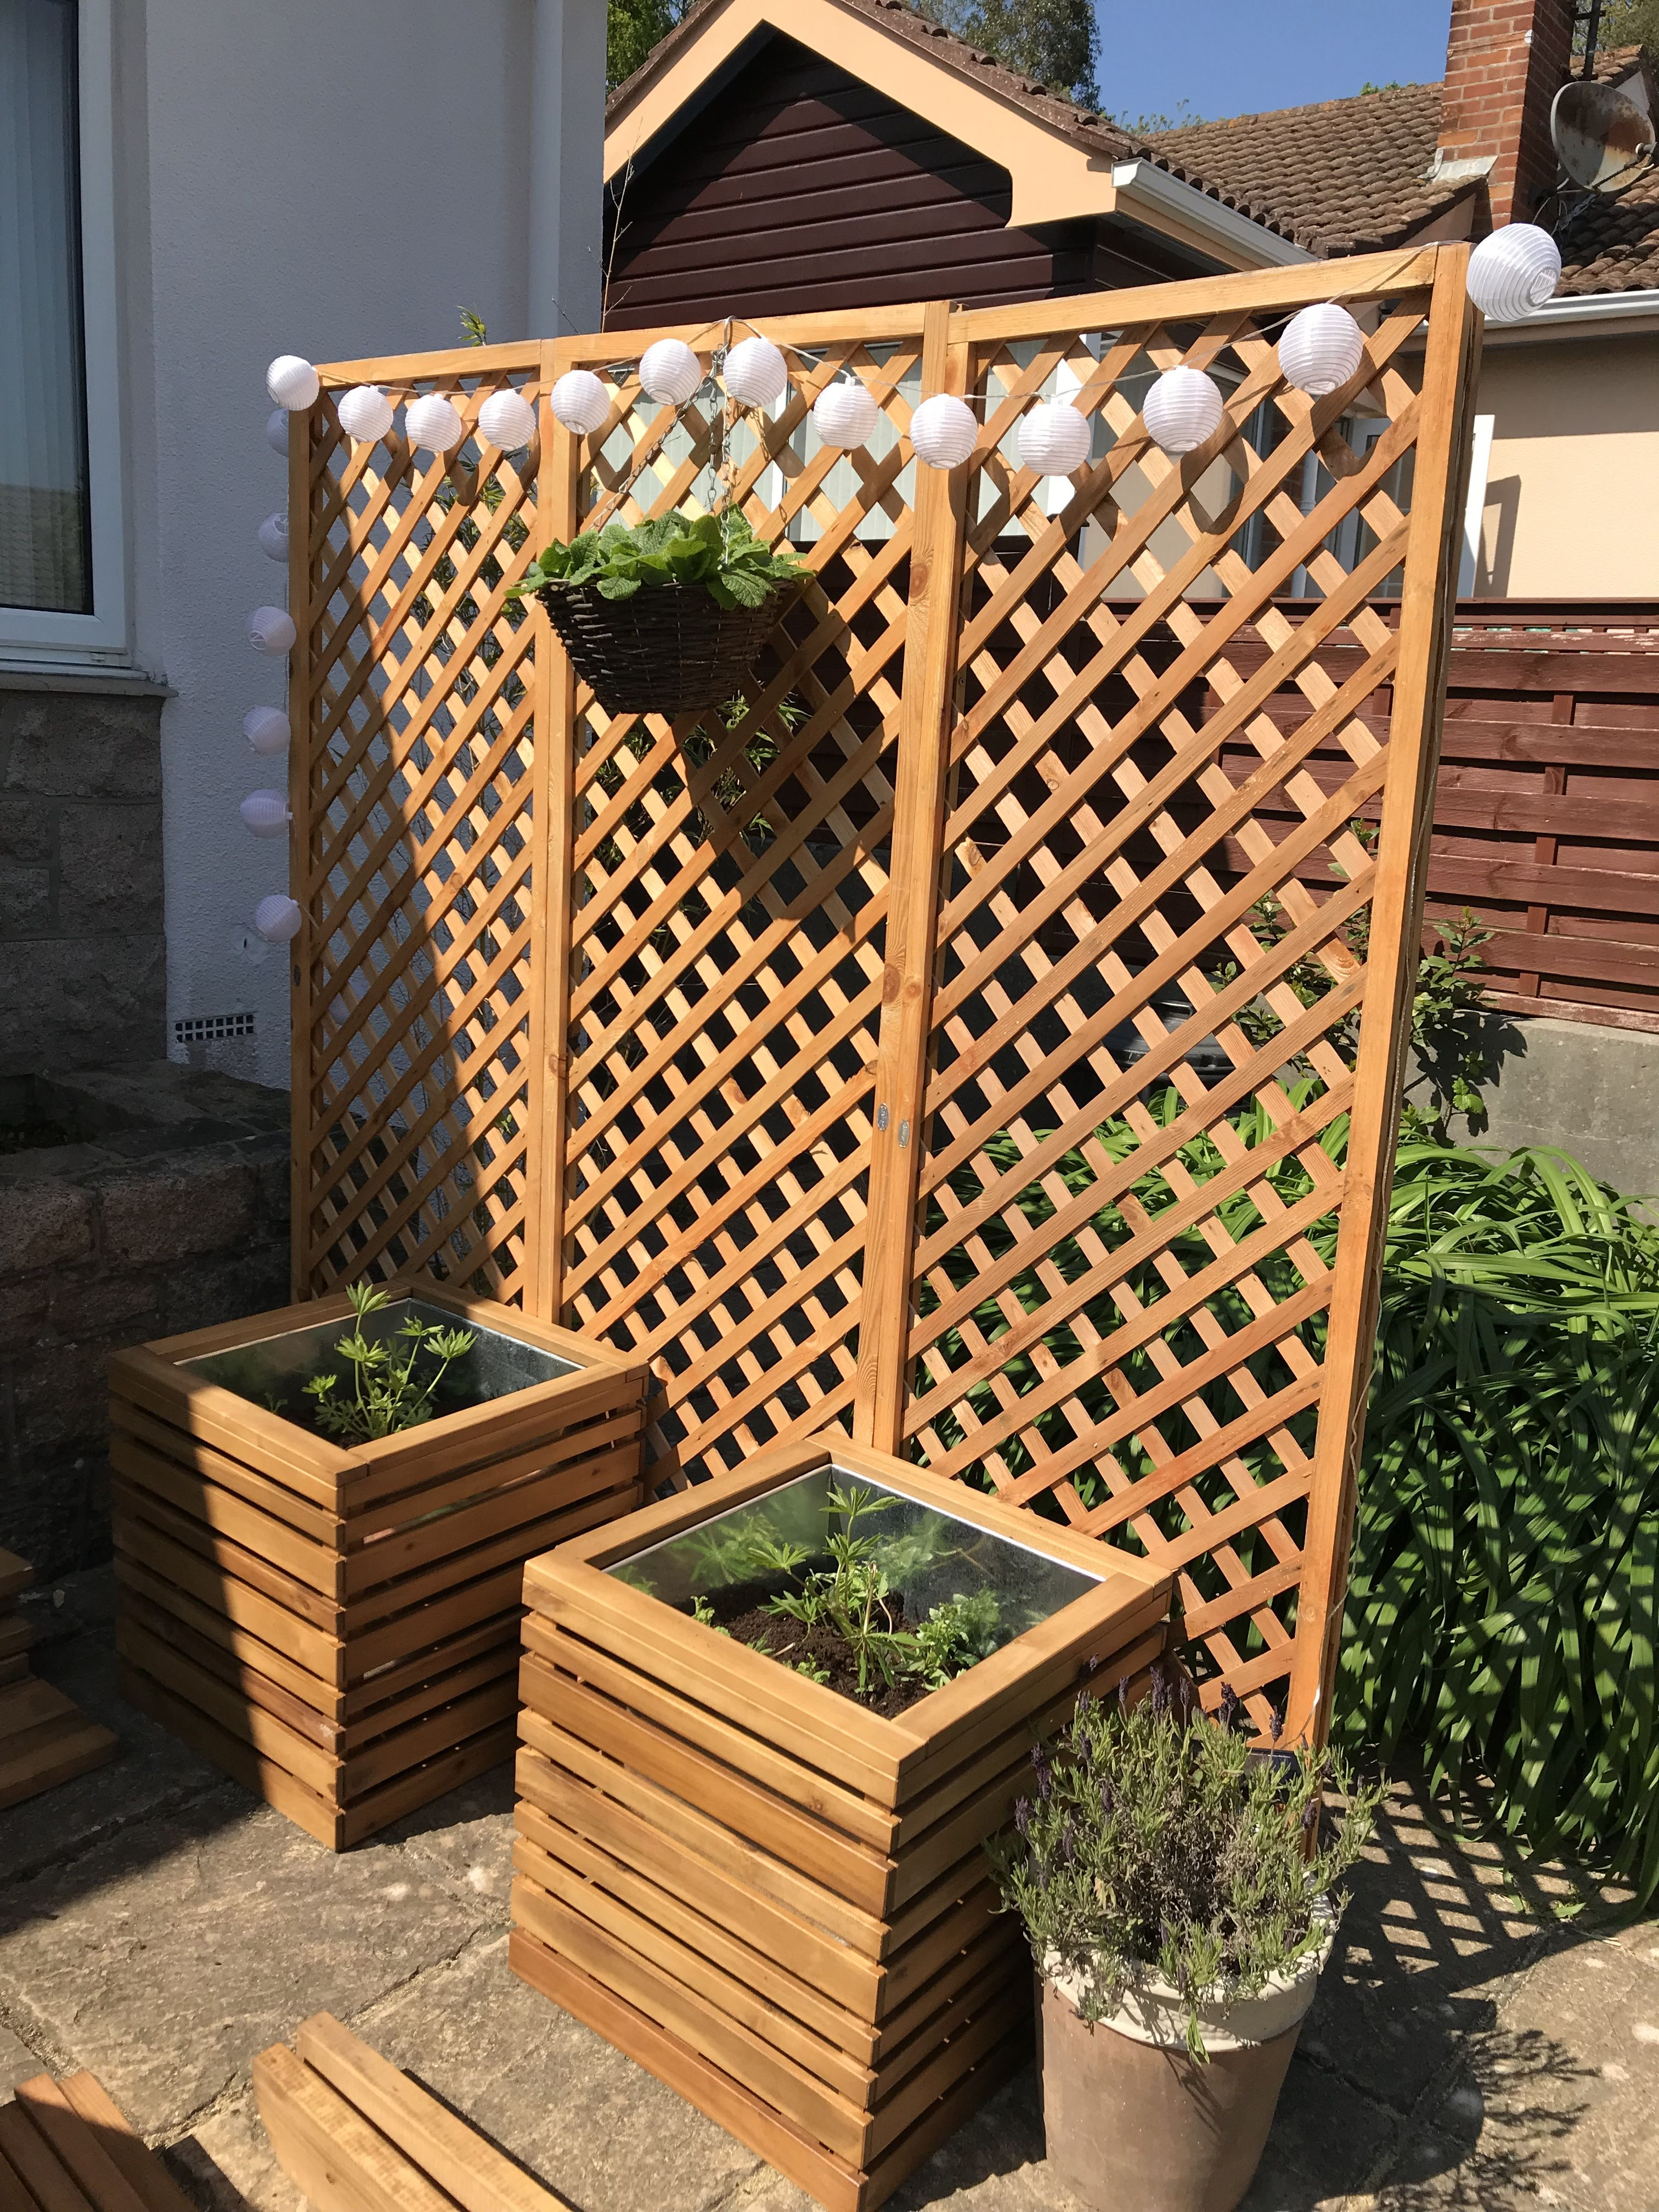 Privacy screen made with trellis and wooden planters 399 for Trellis planter garden screen